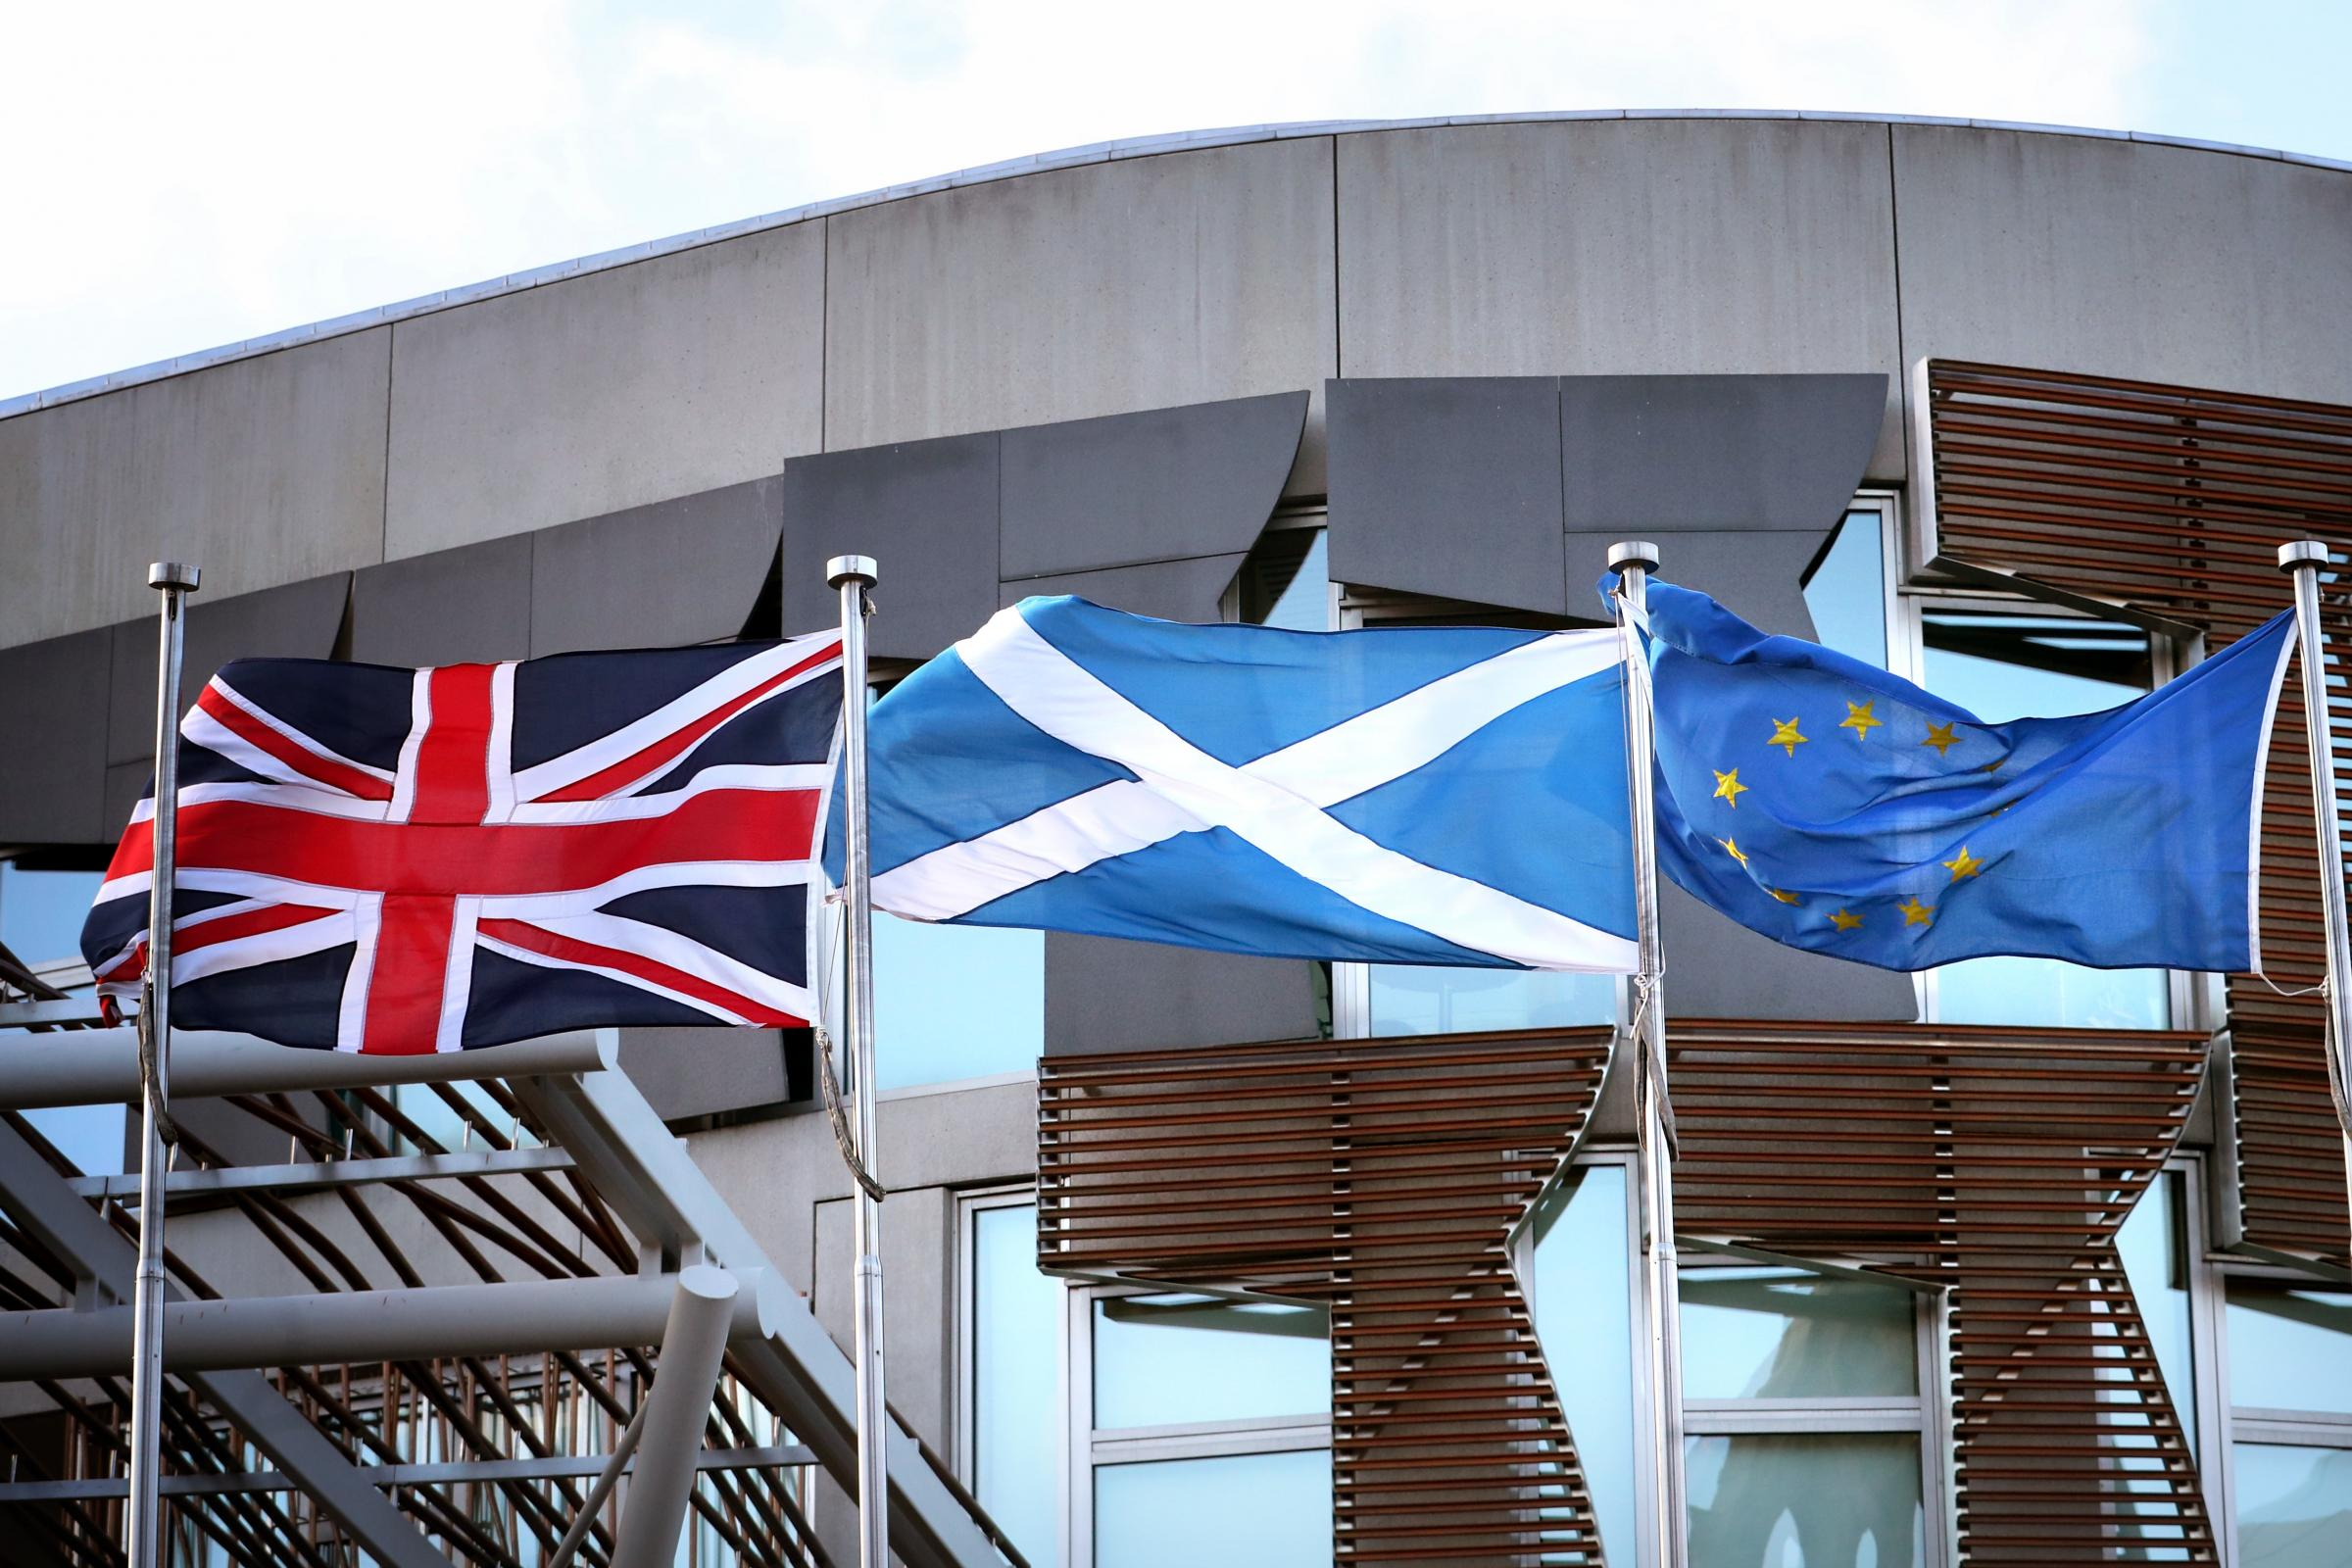 Flags outside Holyrood